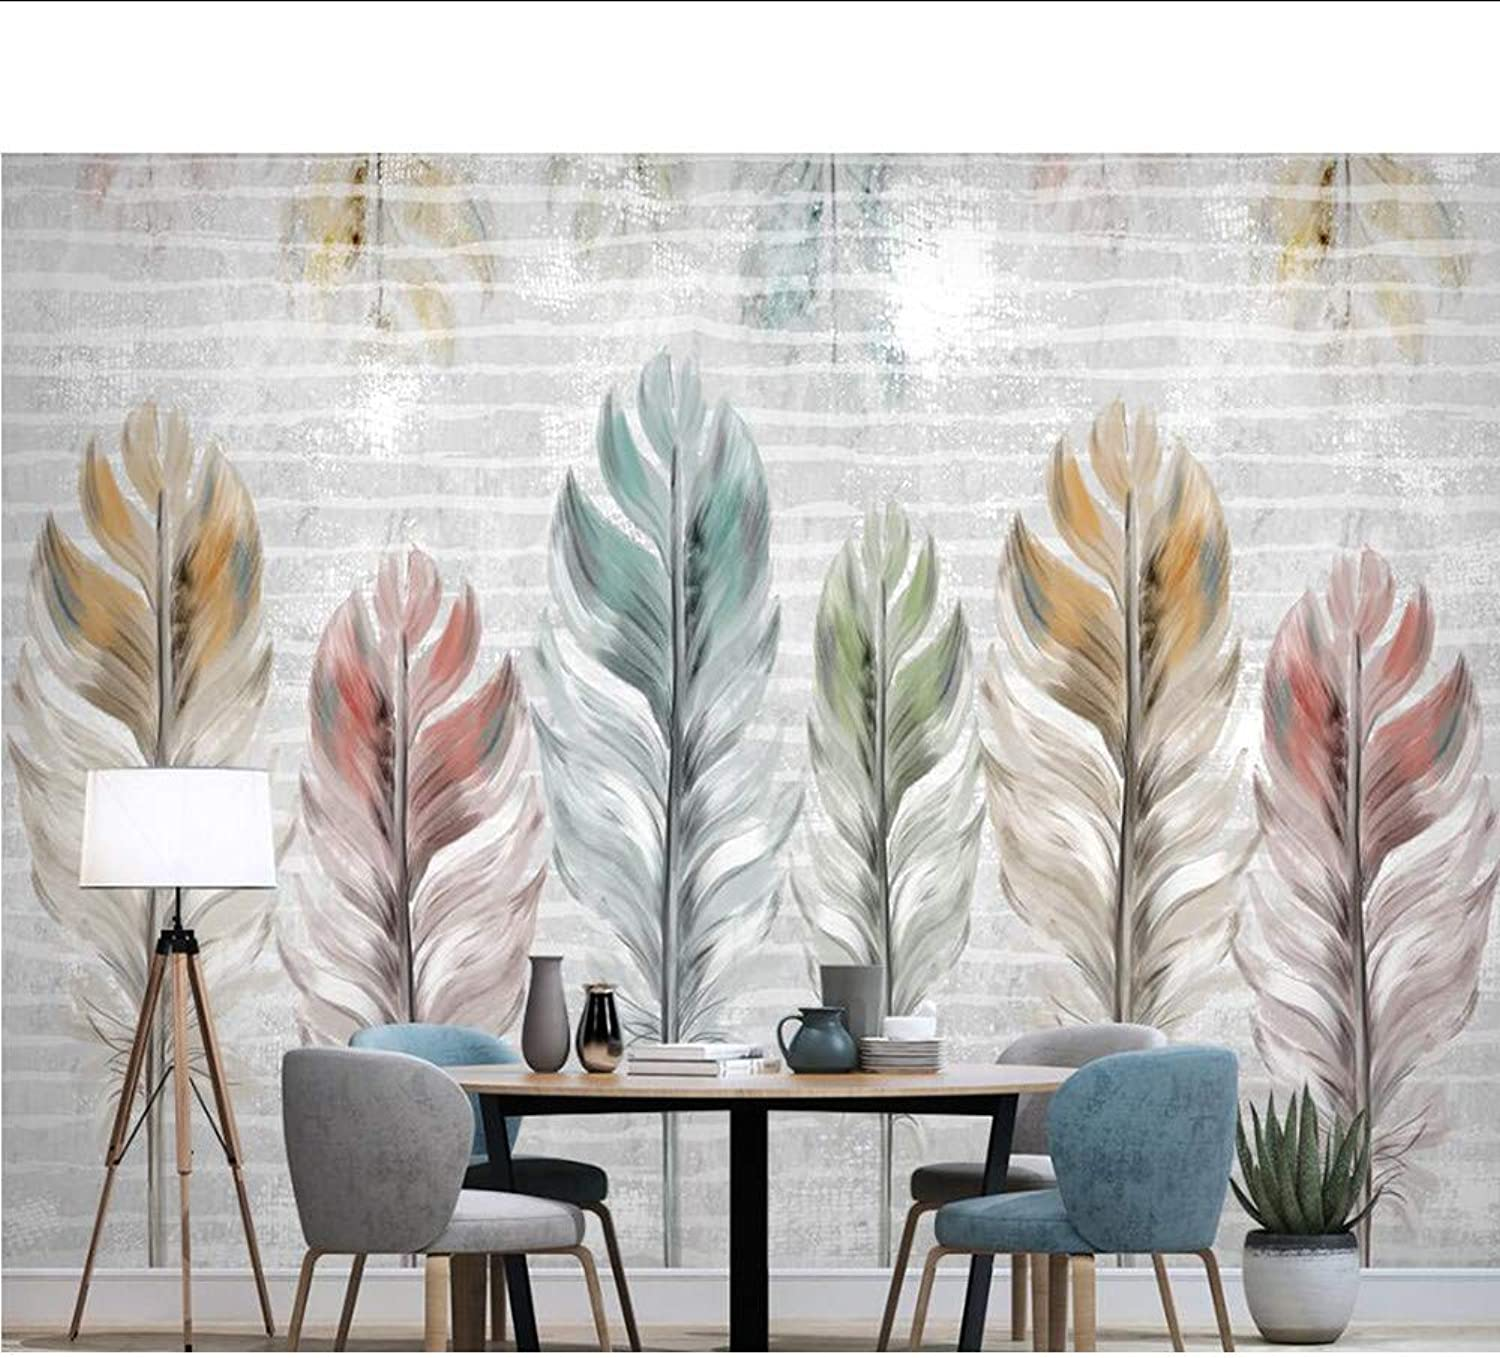 Meaosy Nordic colorful Modern 3D Pens Painted Paper Mural Wall Paper For Living Room Tv Wall Sofa Kids Wall Papers Home Decor-150X120Cm